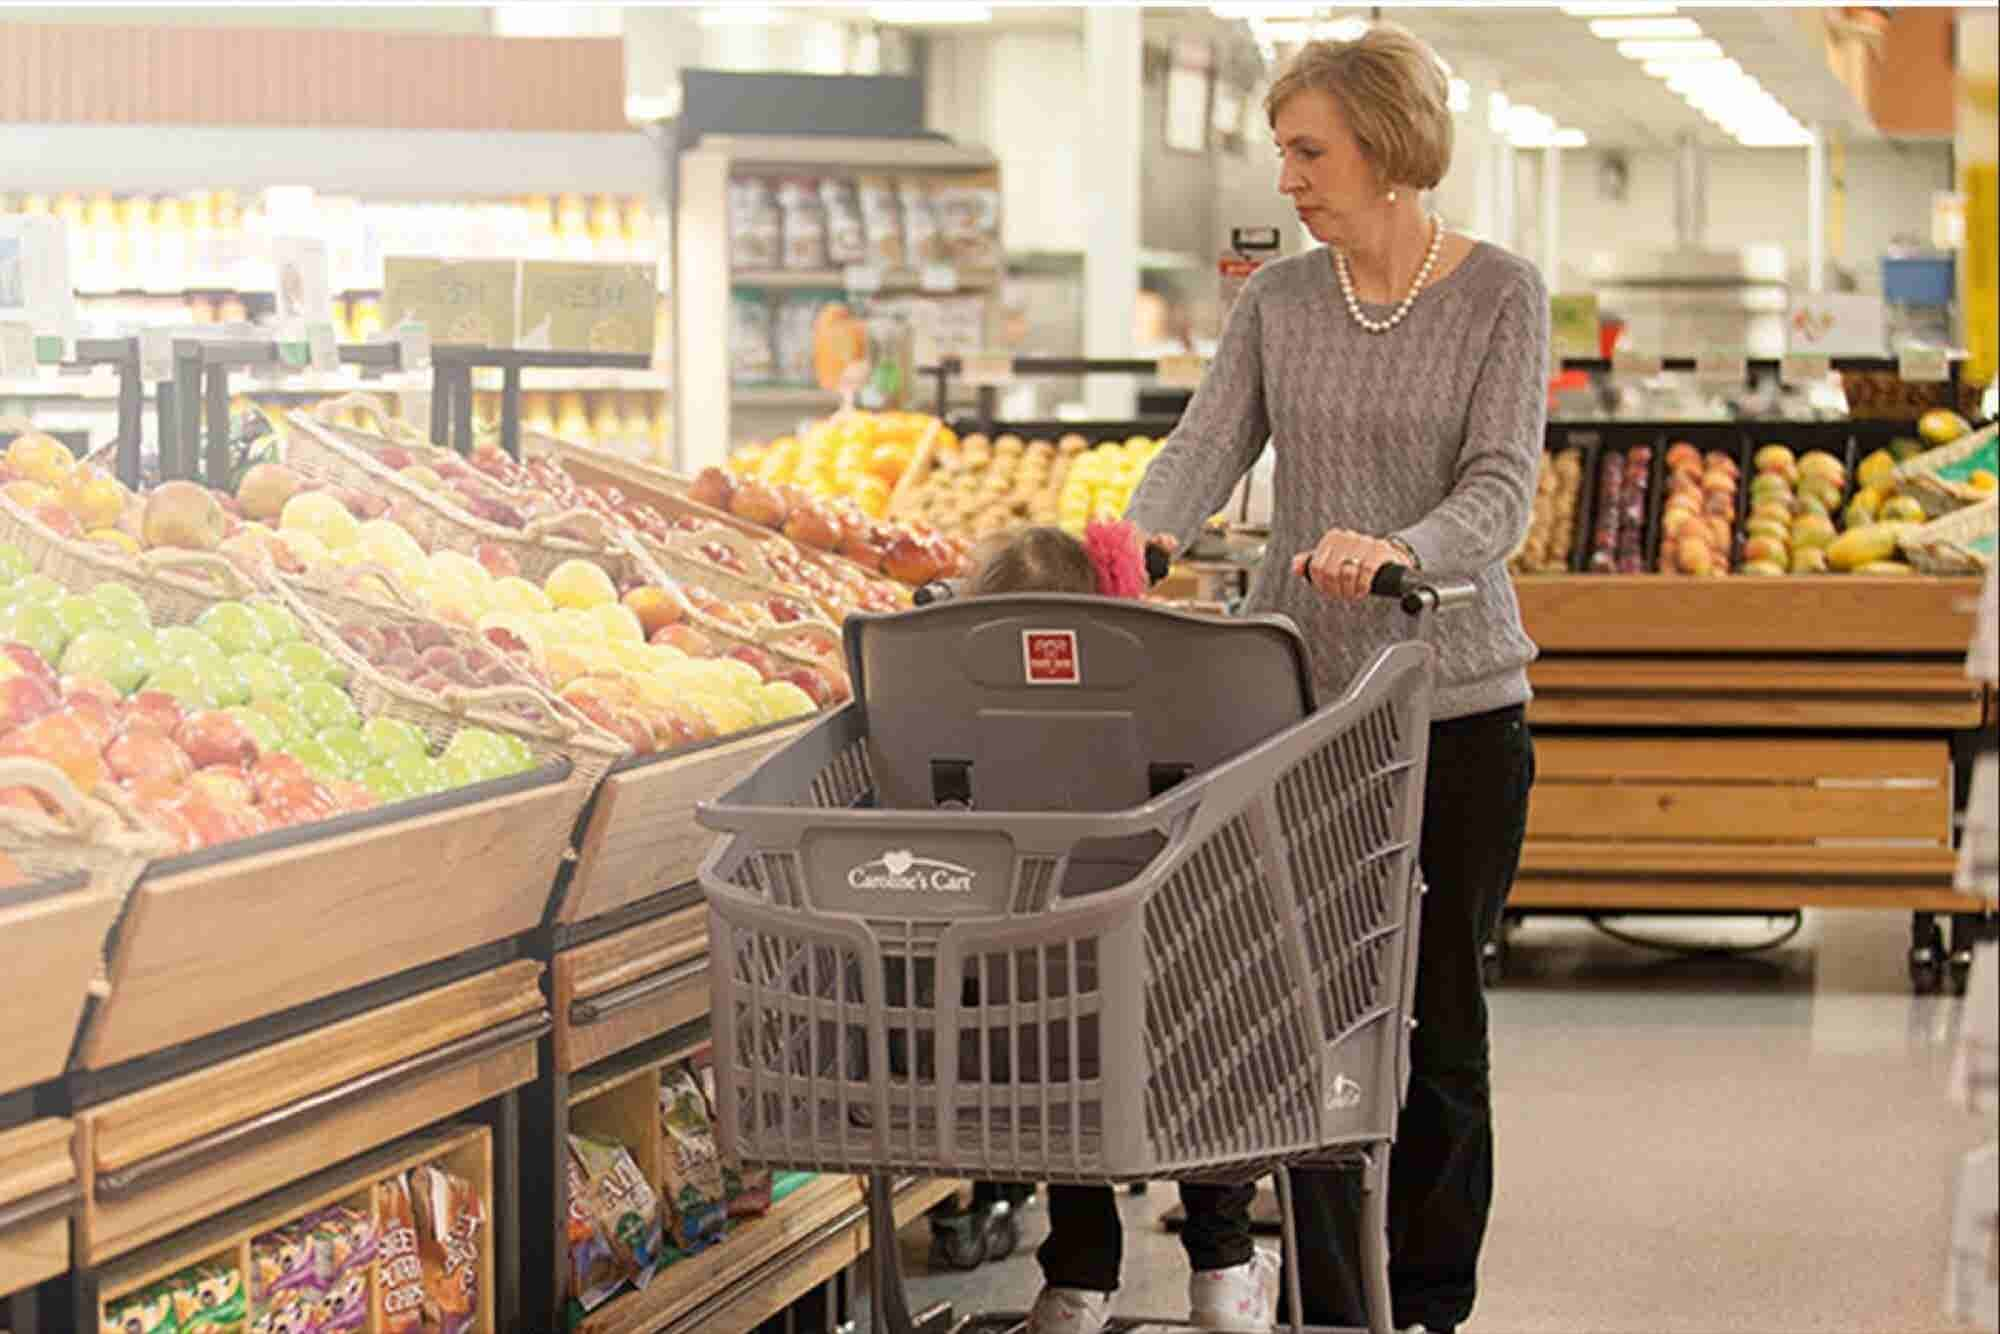 The Grocery Cart Making Life Easier for Special Needs Families